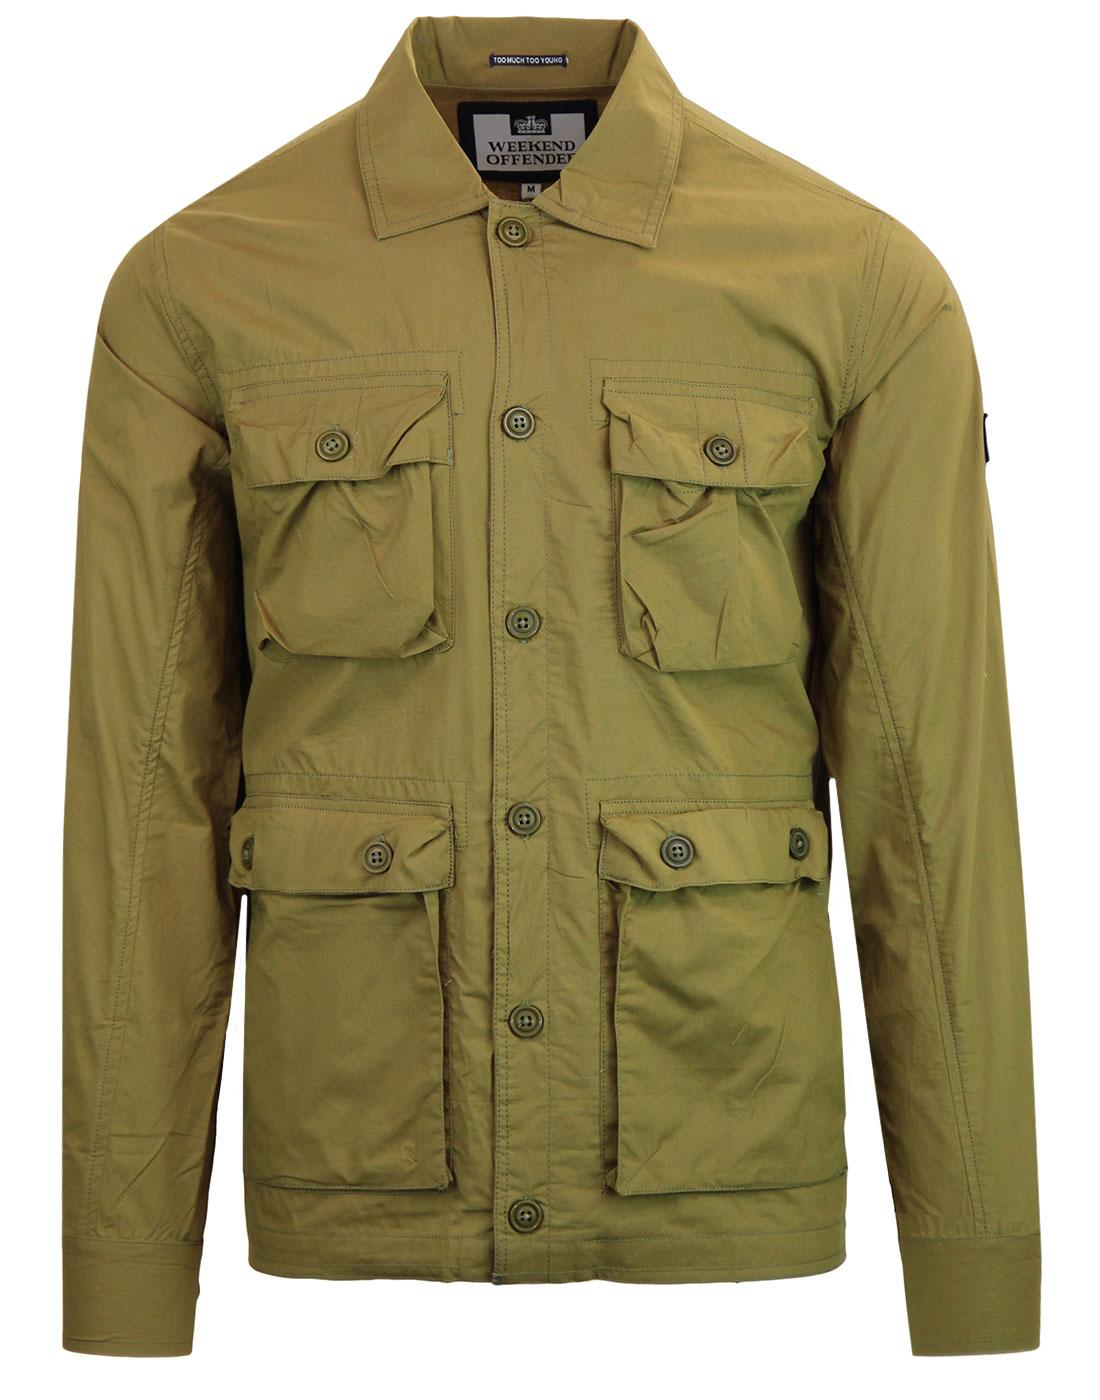 Salinger WEEKEND OFFENDER 90s Military Jacket (O)